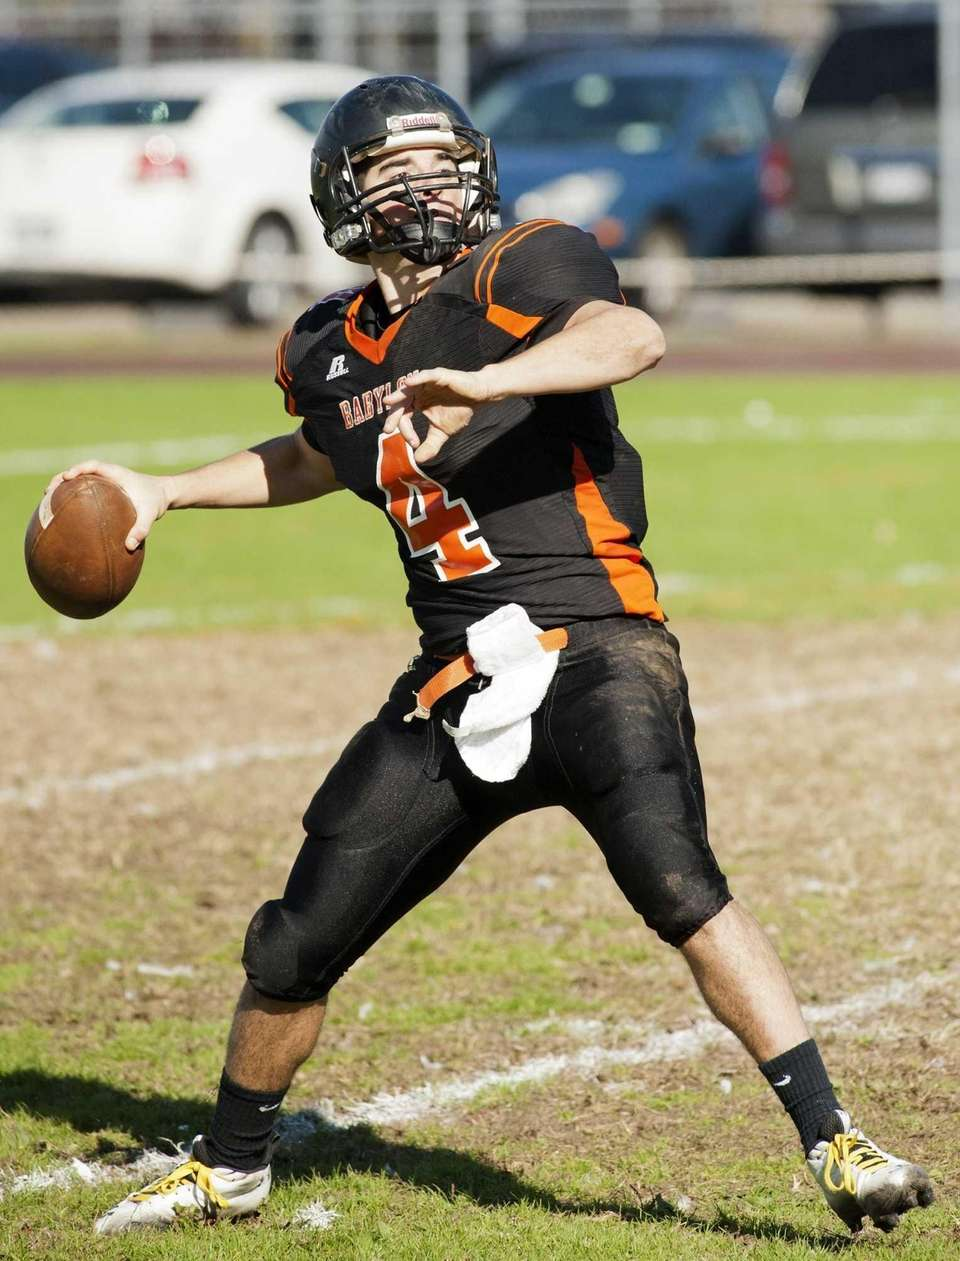 Babylon's quarterback Nick Santorelli gets ready to pass.